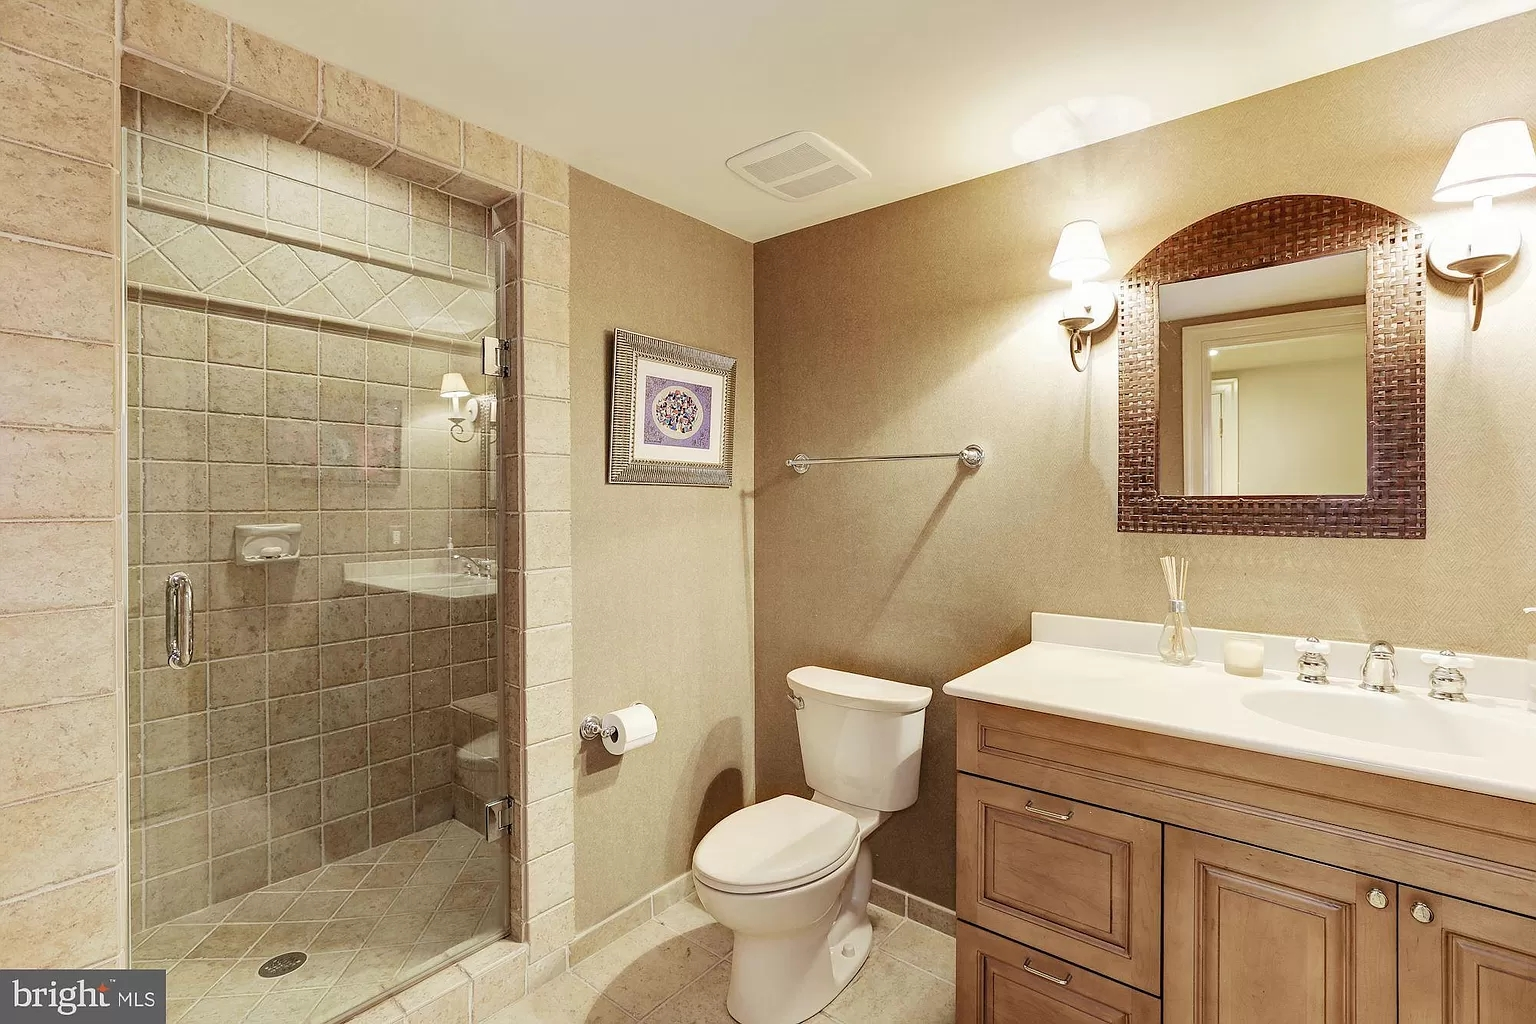 Small Bathroom Designs 2020   Pictures Ideas & Colors on Small Bathroom Ideas 2020 id=82337